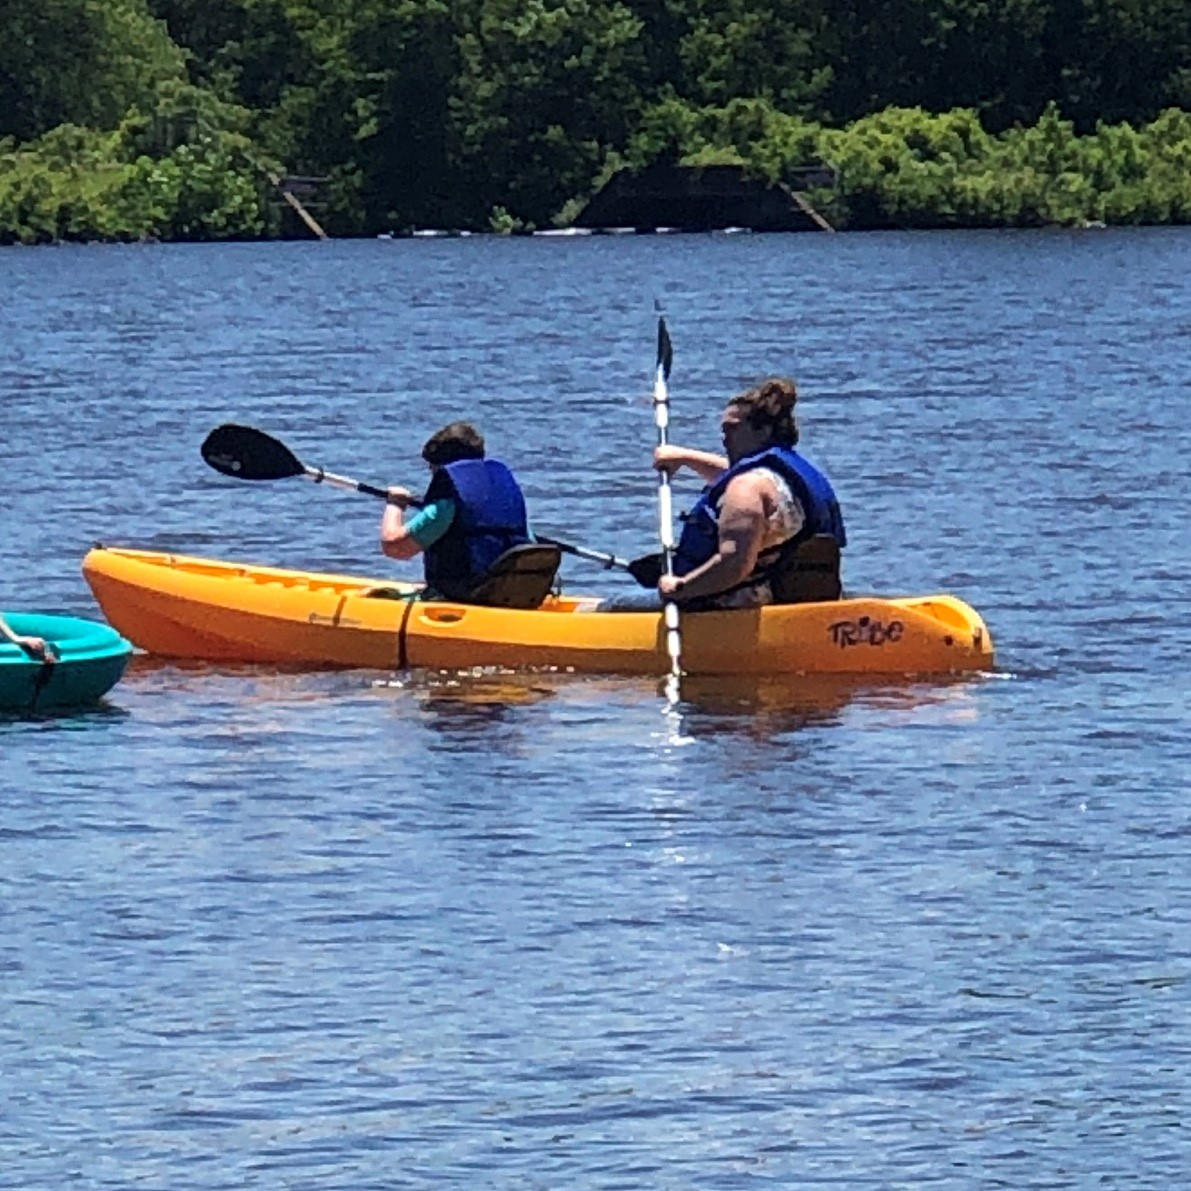 Tandem Kayak Rentals (Available only to Members/Registered Guests at this time.)